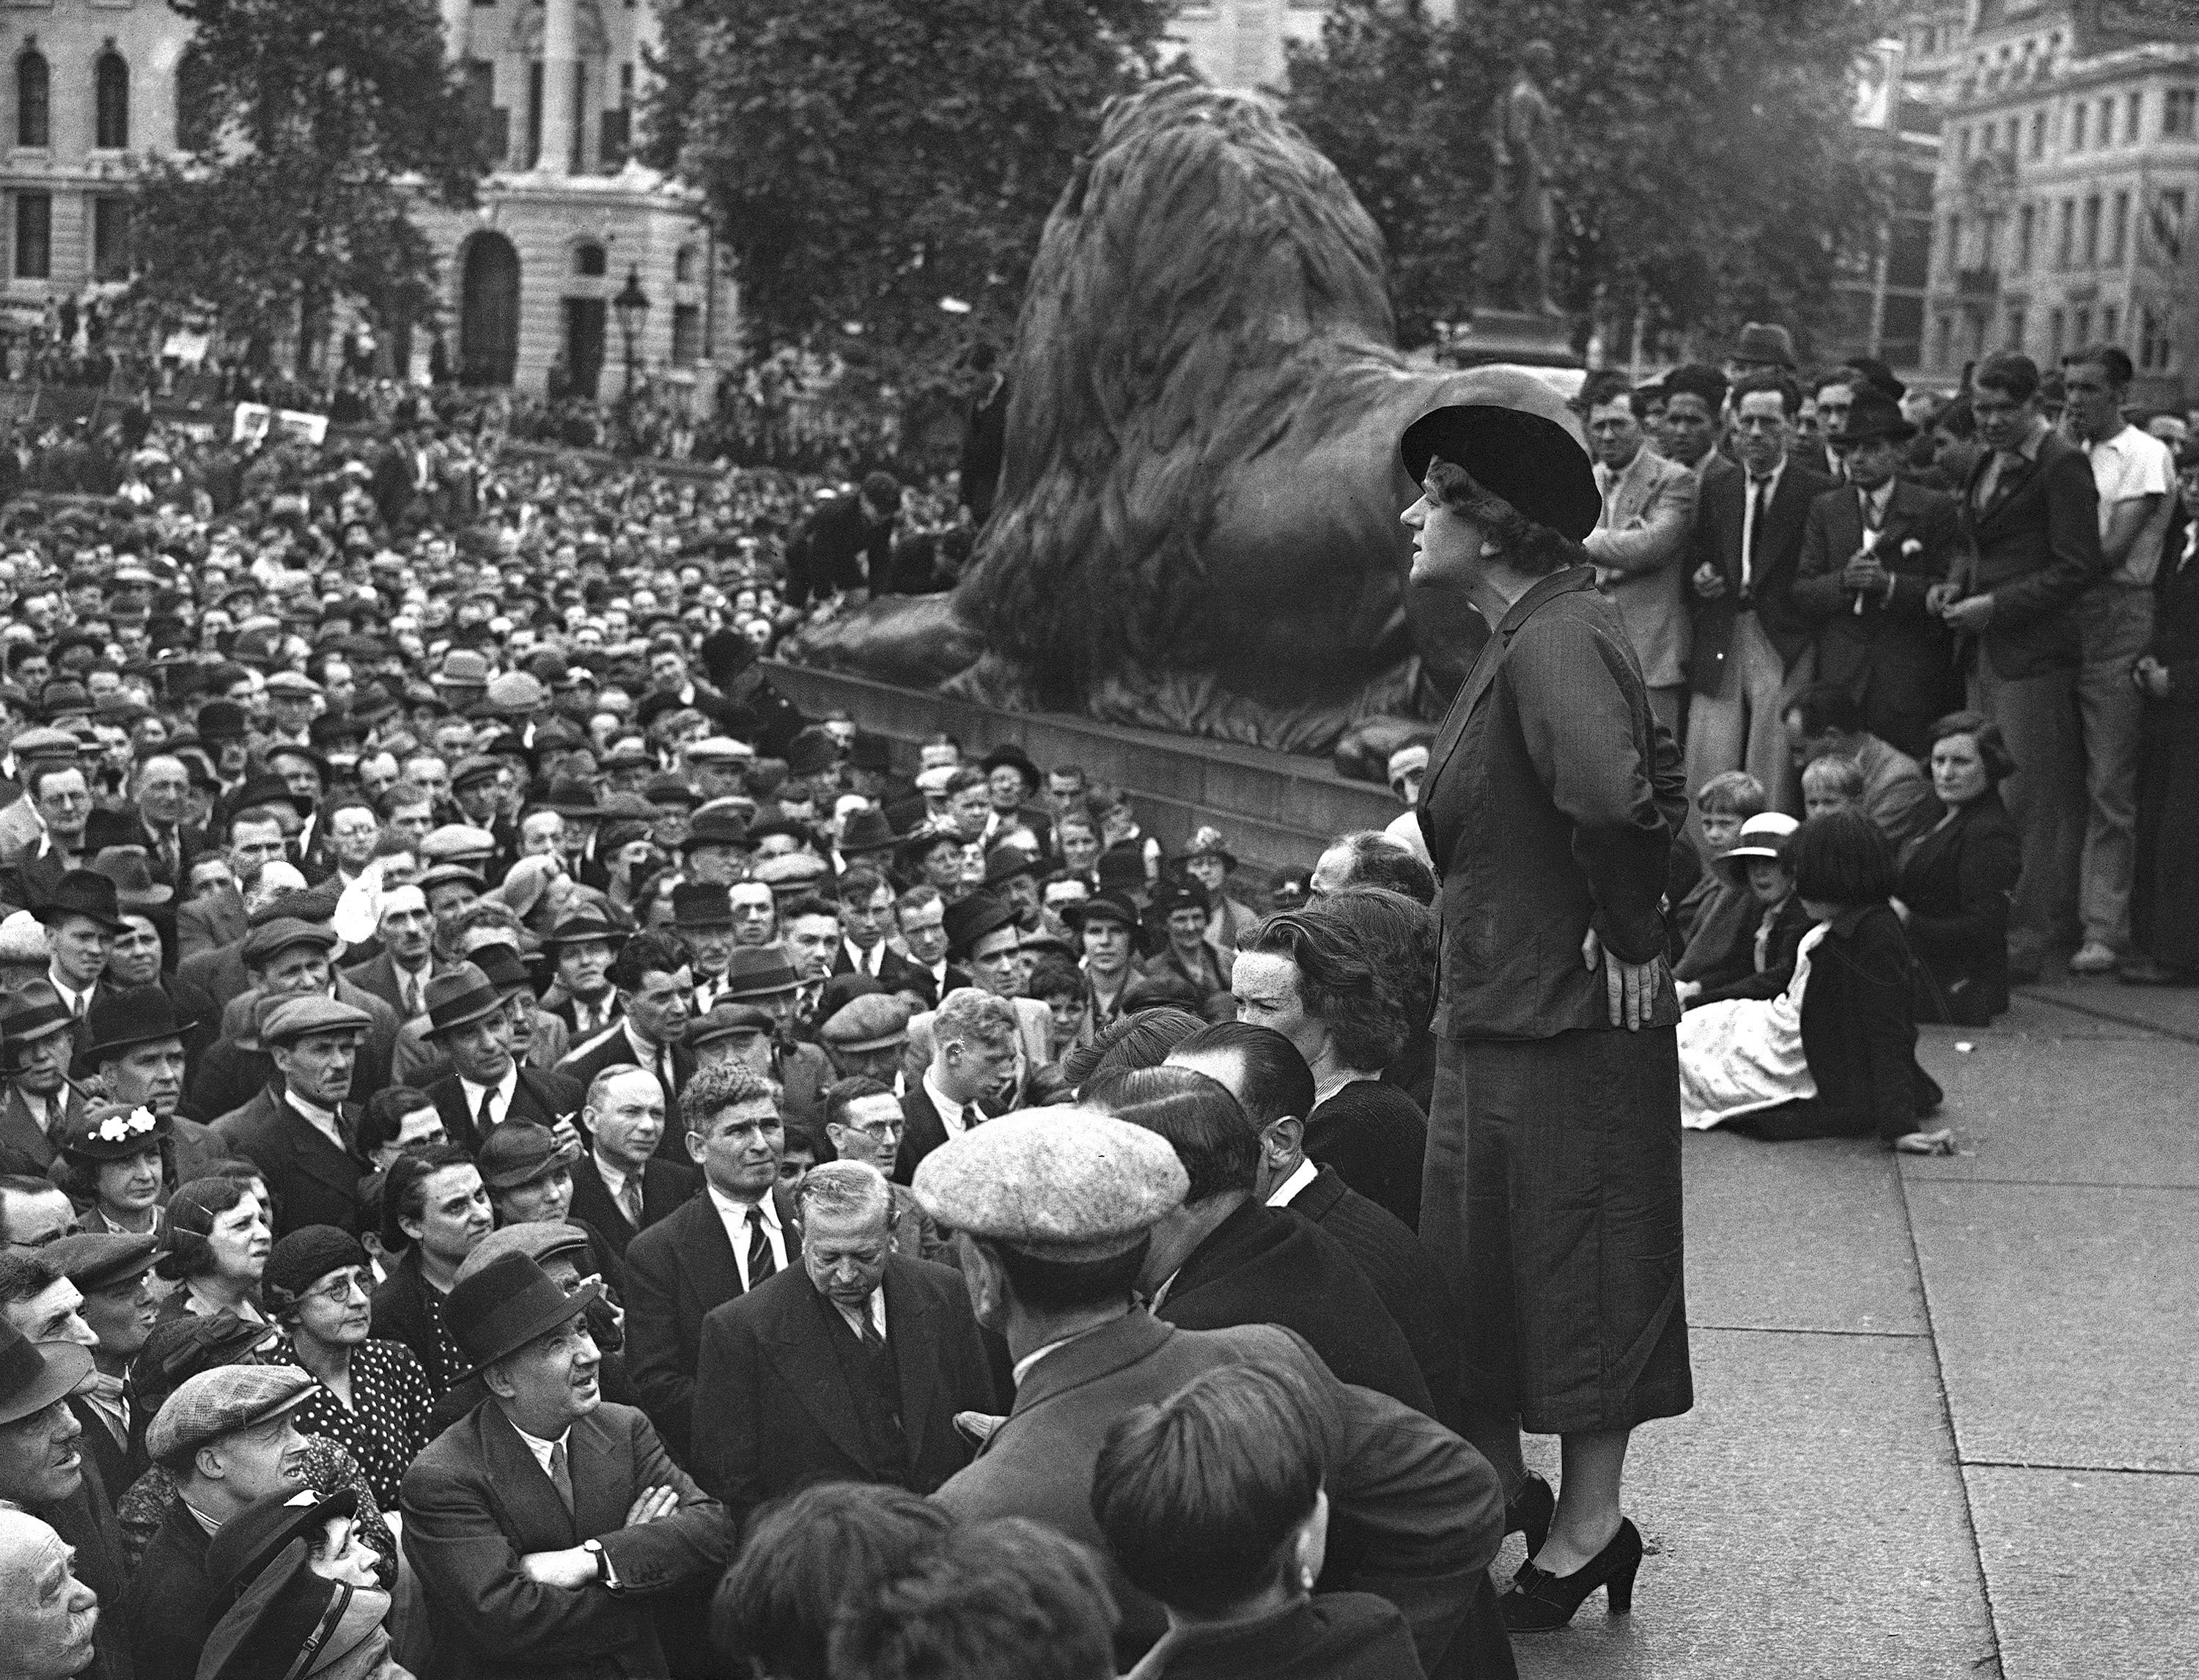 A big demonstration in support of the International Labour Policy on Spain was held in Trafalgar Square on July 11. Miss Ellen Wilkinson, M.P., addressing the huge meeting in Trafalgar Square in London on July 11, 1937.